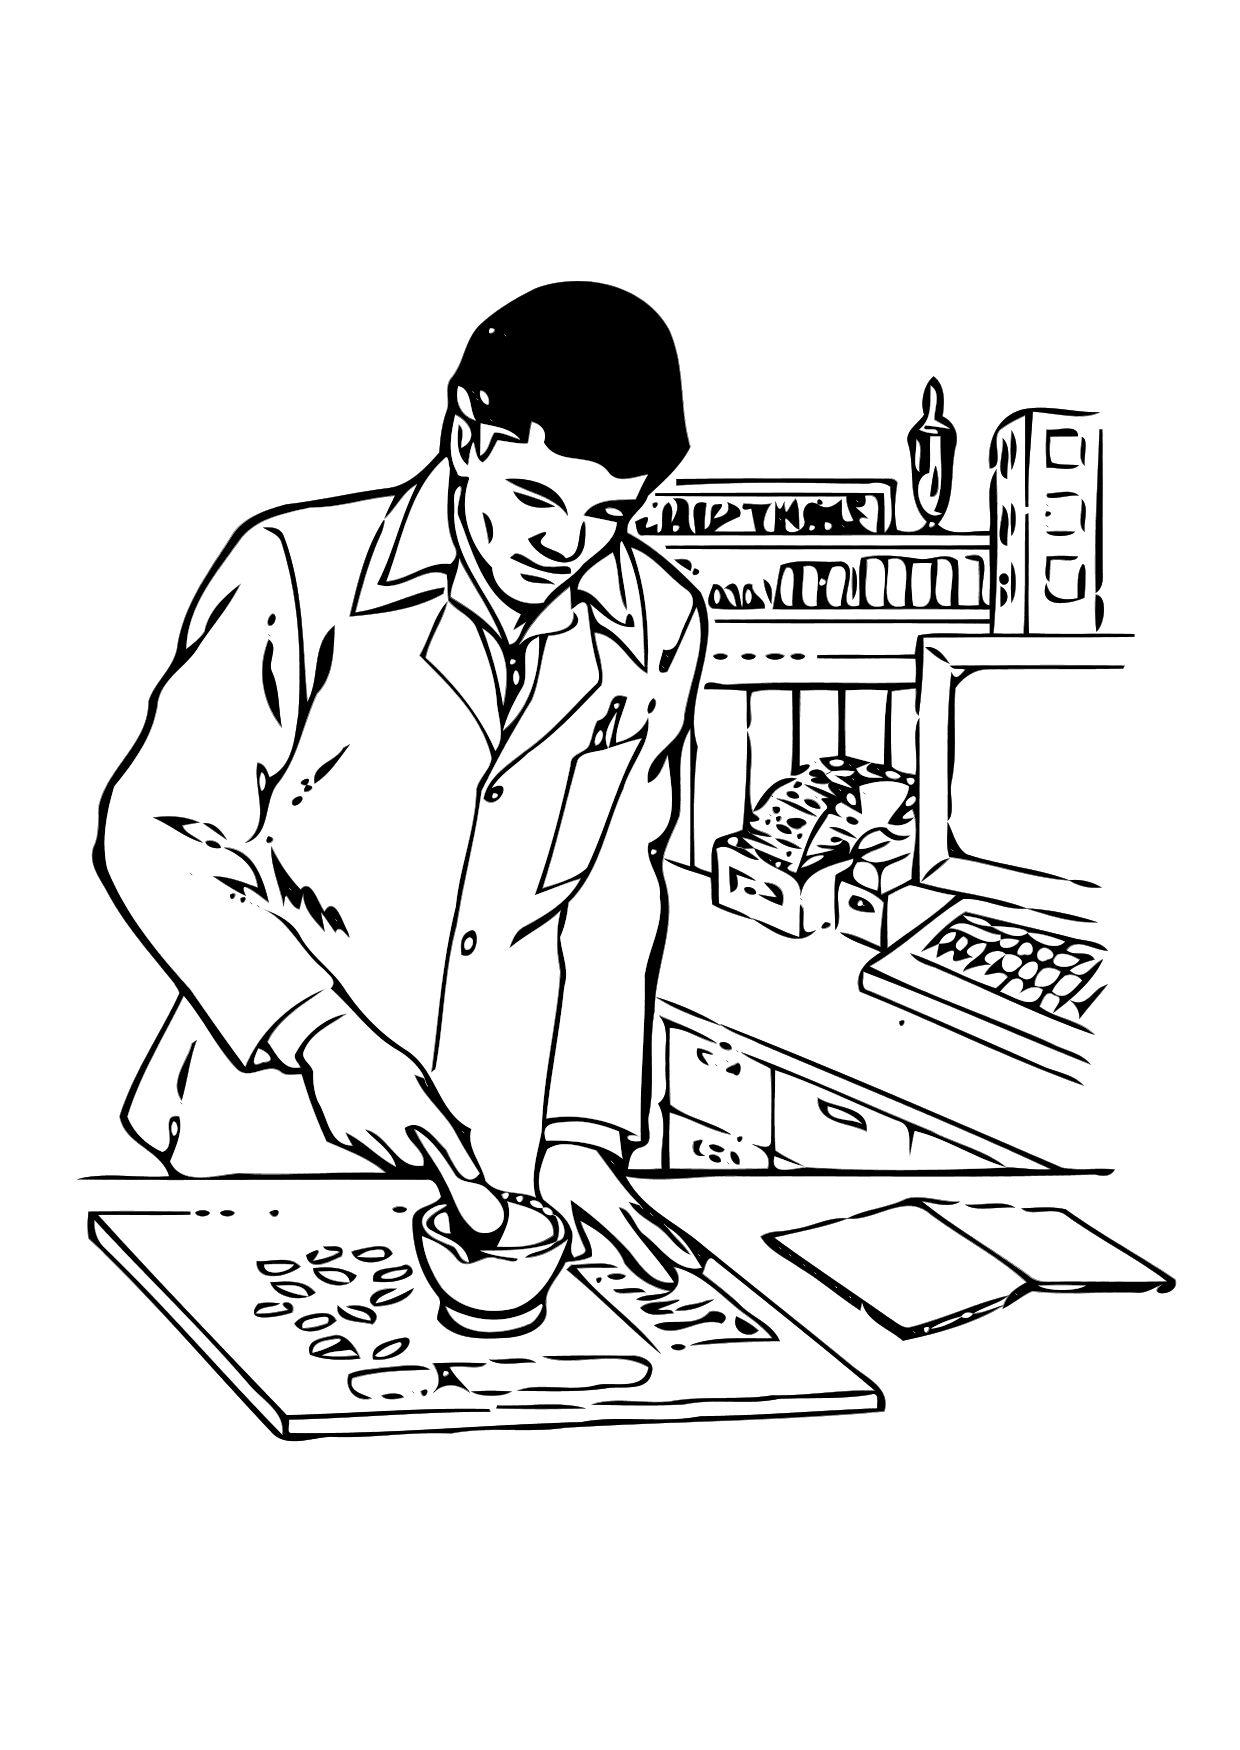 coloring pages pharmacist - photo#8